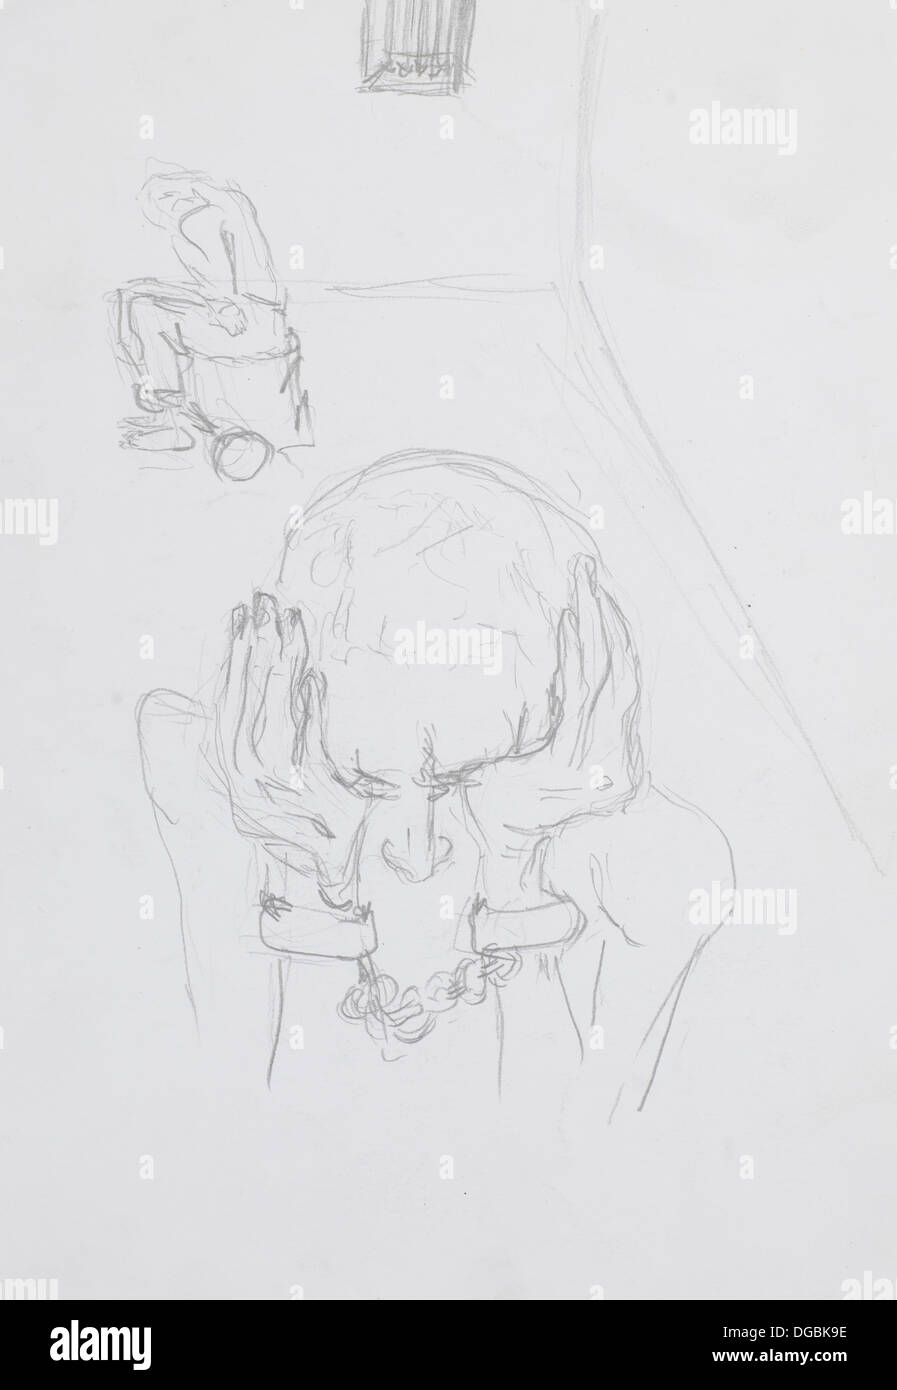 Hand drawn sketch of desperate imprisoned man with handcuffs pencil technique stock image